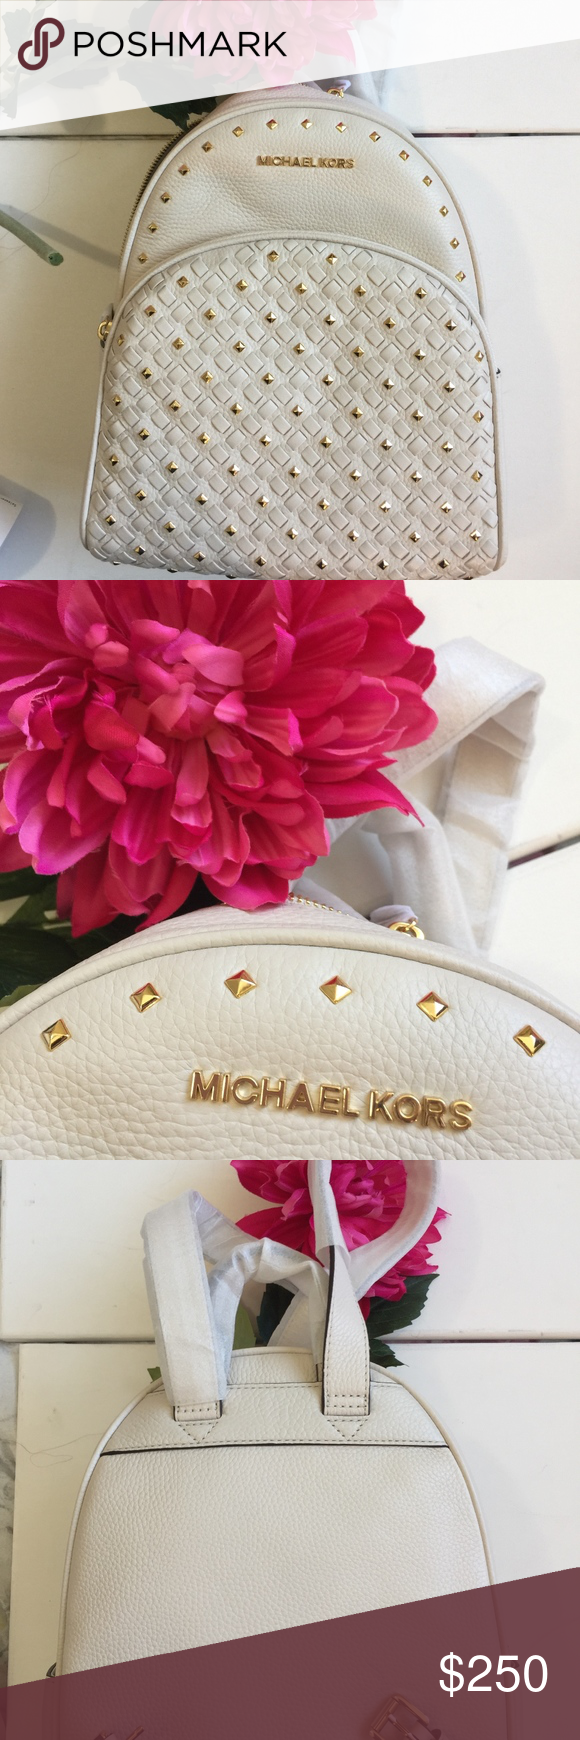 80d090bf47bc Michael Kors Vanilla Abbey MD Backpack Brand new, this is a stunning  studded backpack.